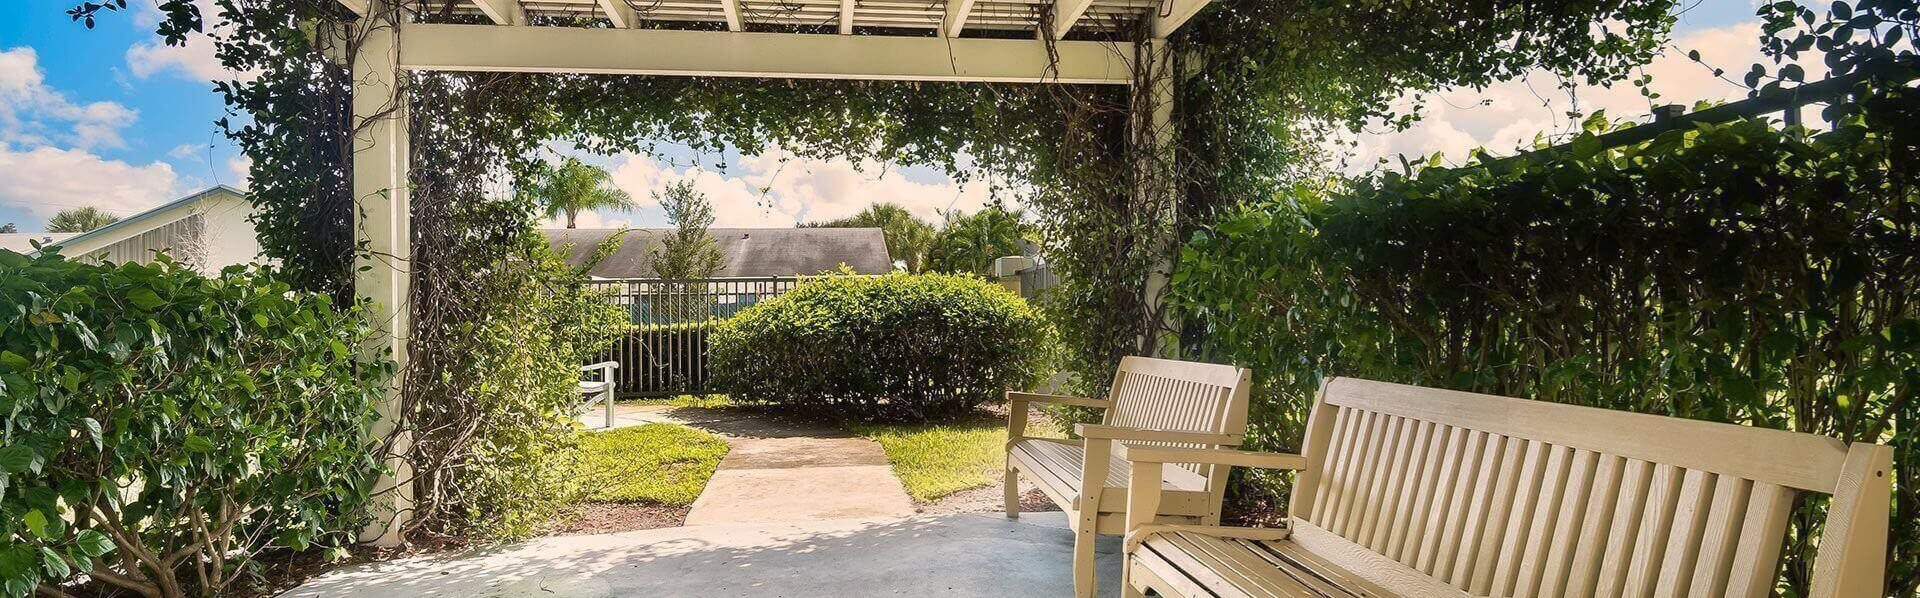 Beautiful Courtyard Sitting Area at Pacifica Senior Living Palm Beach, Greenacres, 33467